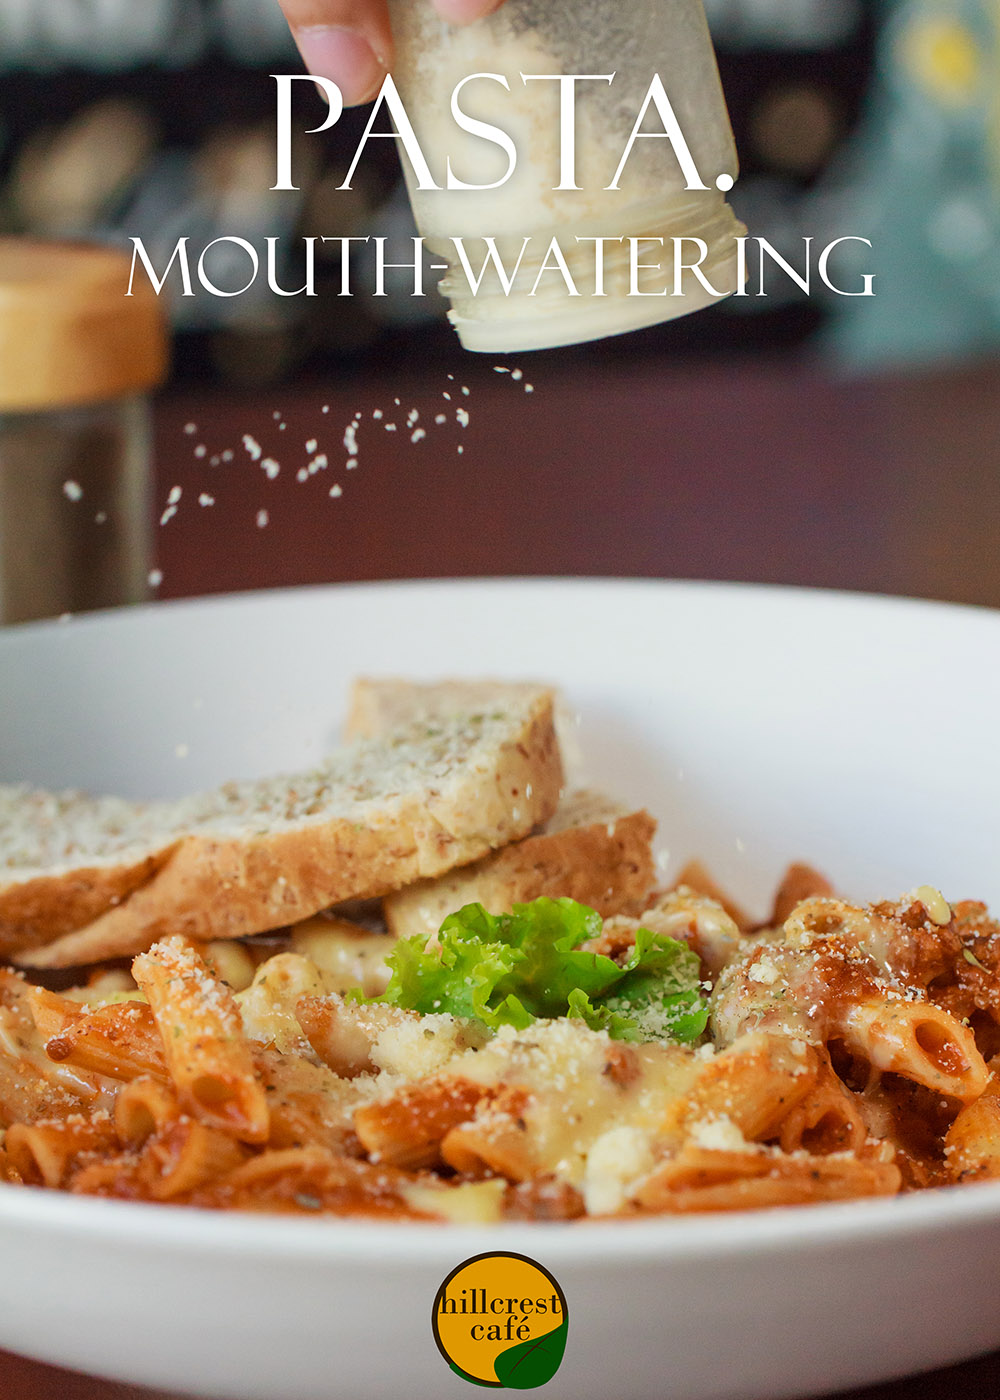 Poster: Mouth-watering pasta